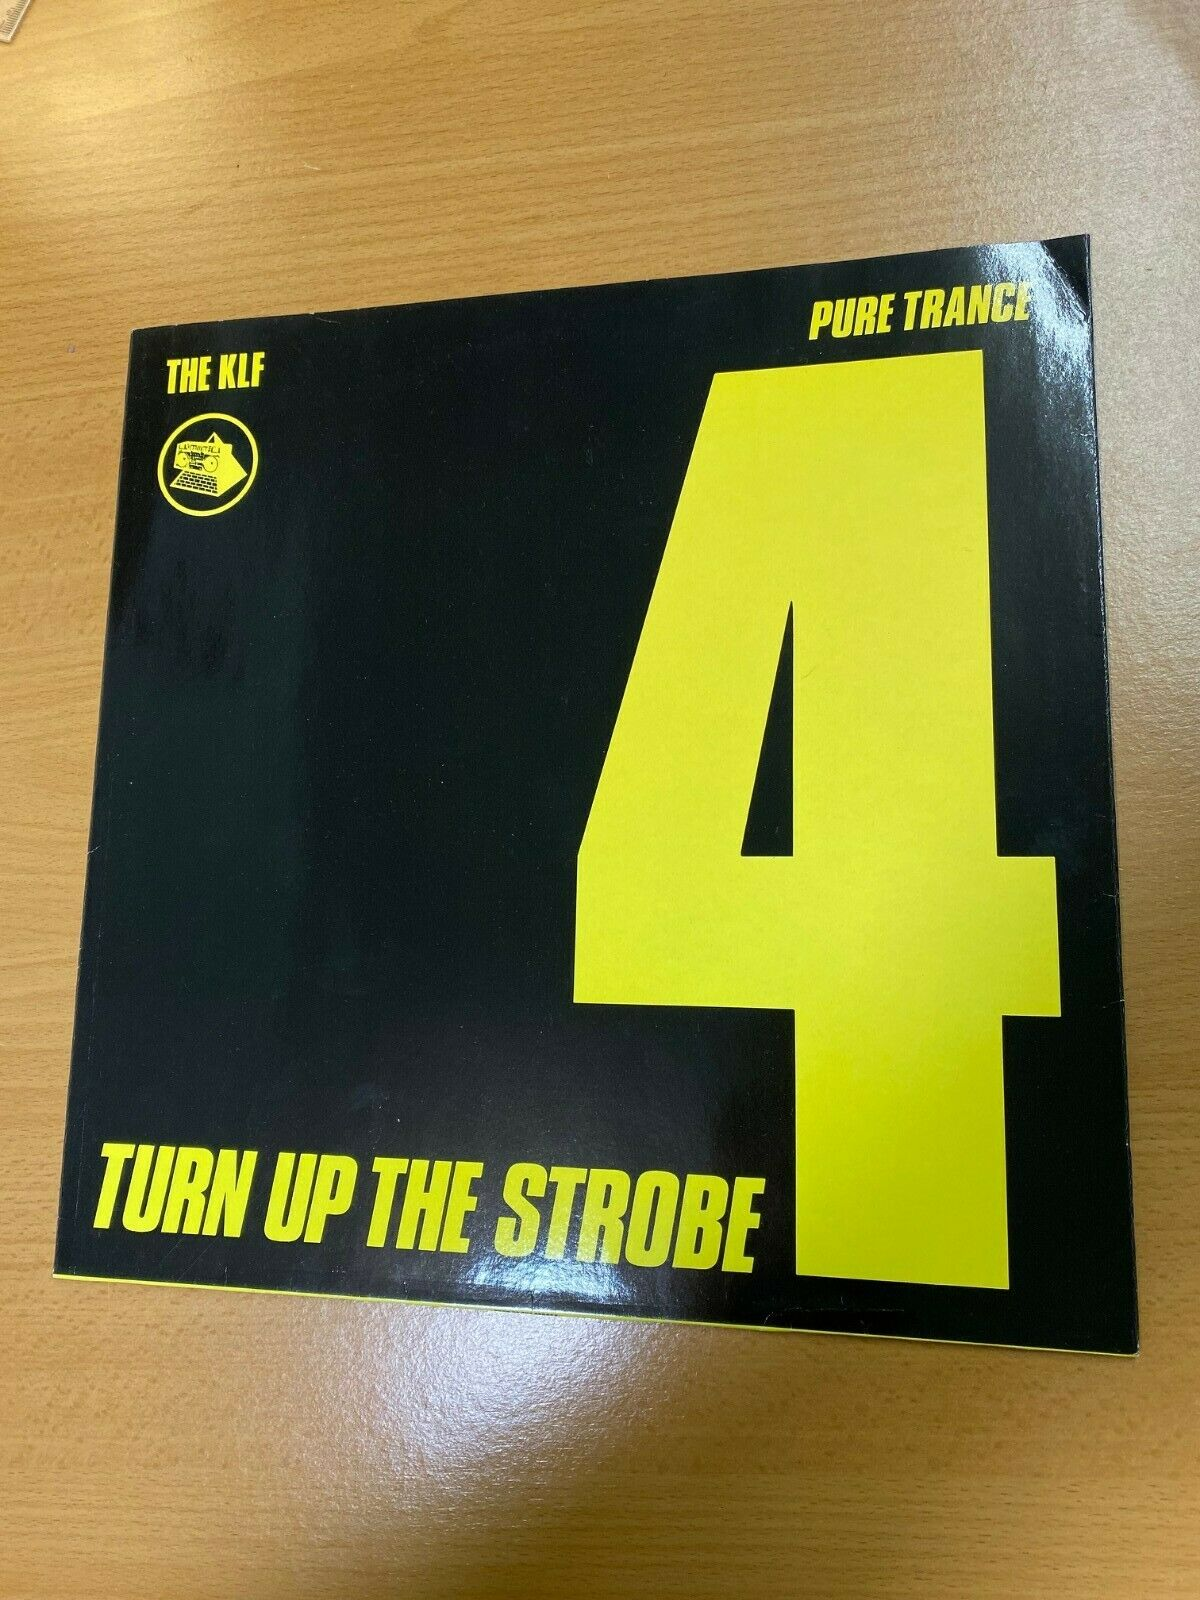 KLF - **** KLF 007T Turn Up The Strobe Record Sleeve PURE TRANCE 4